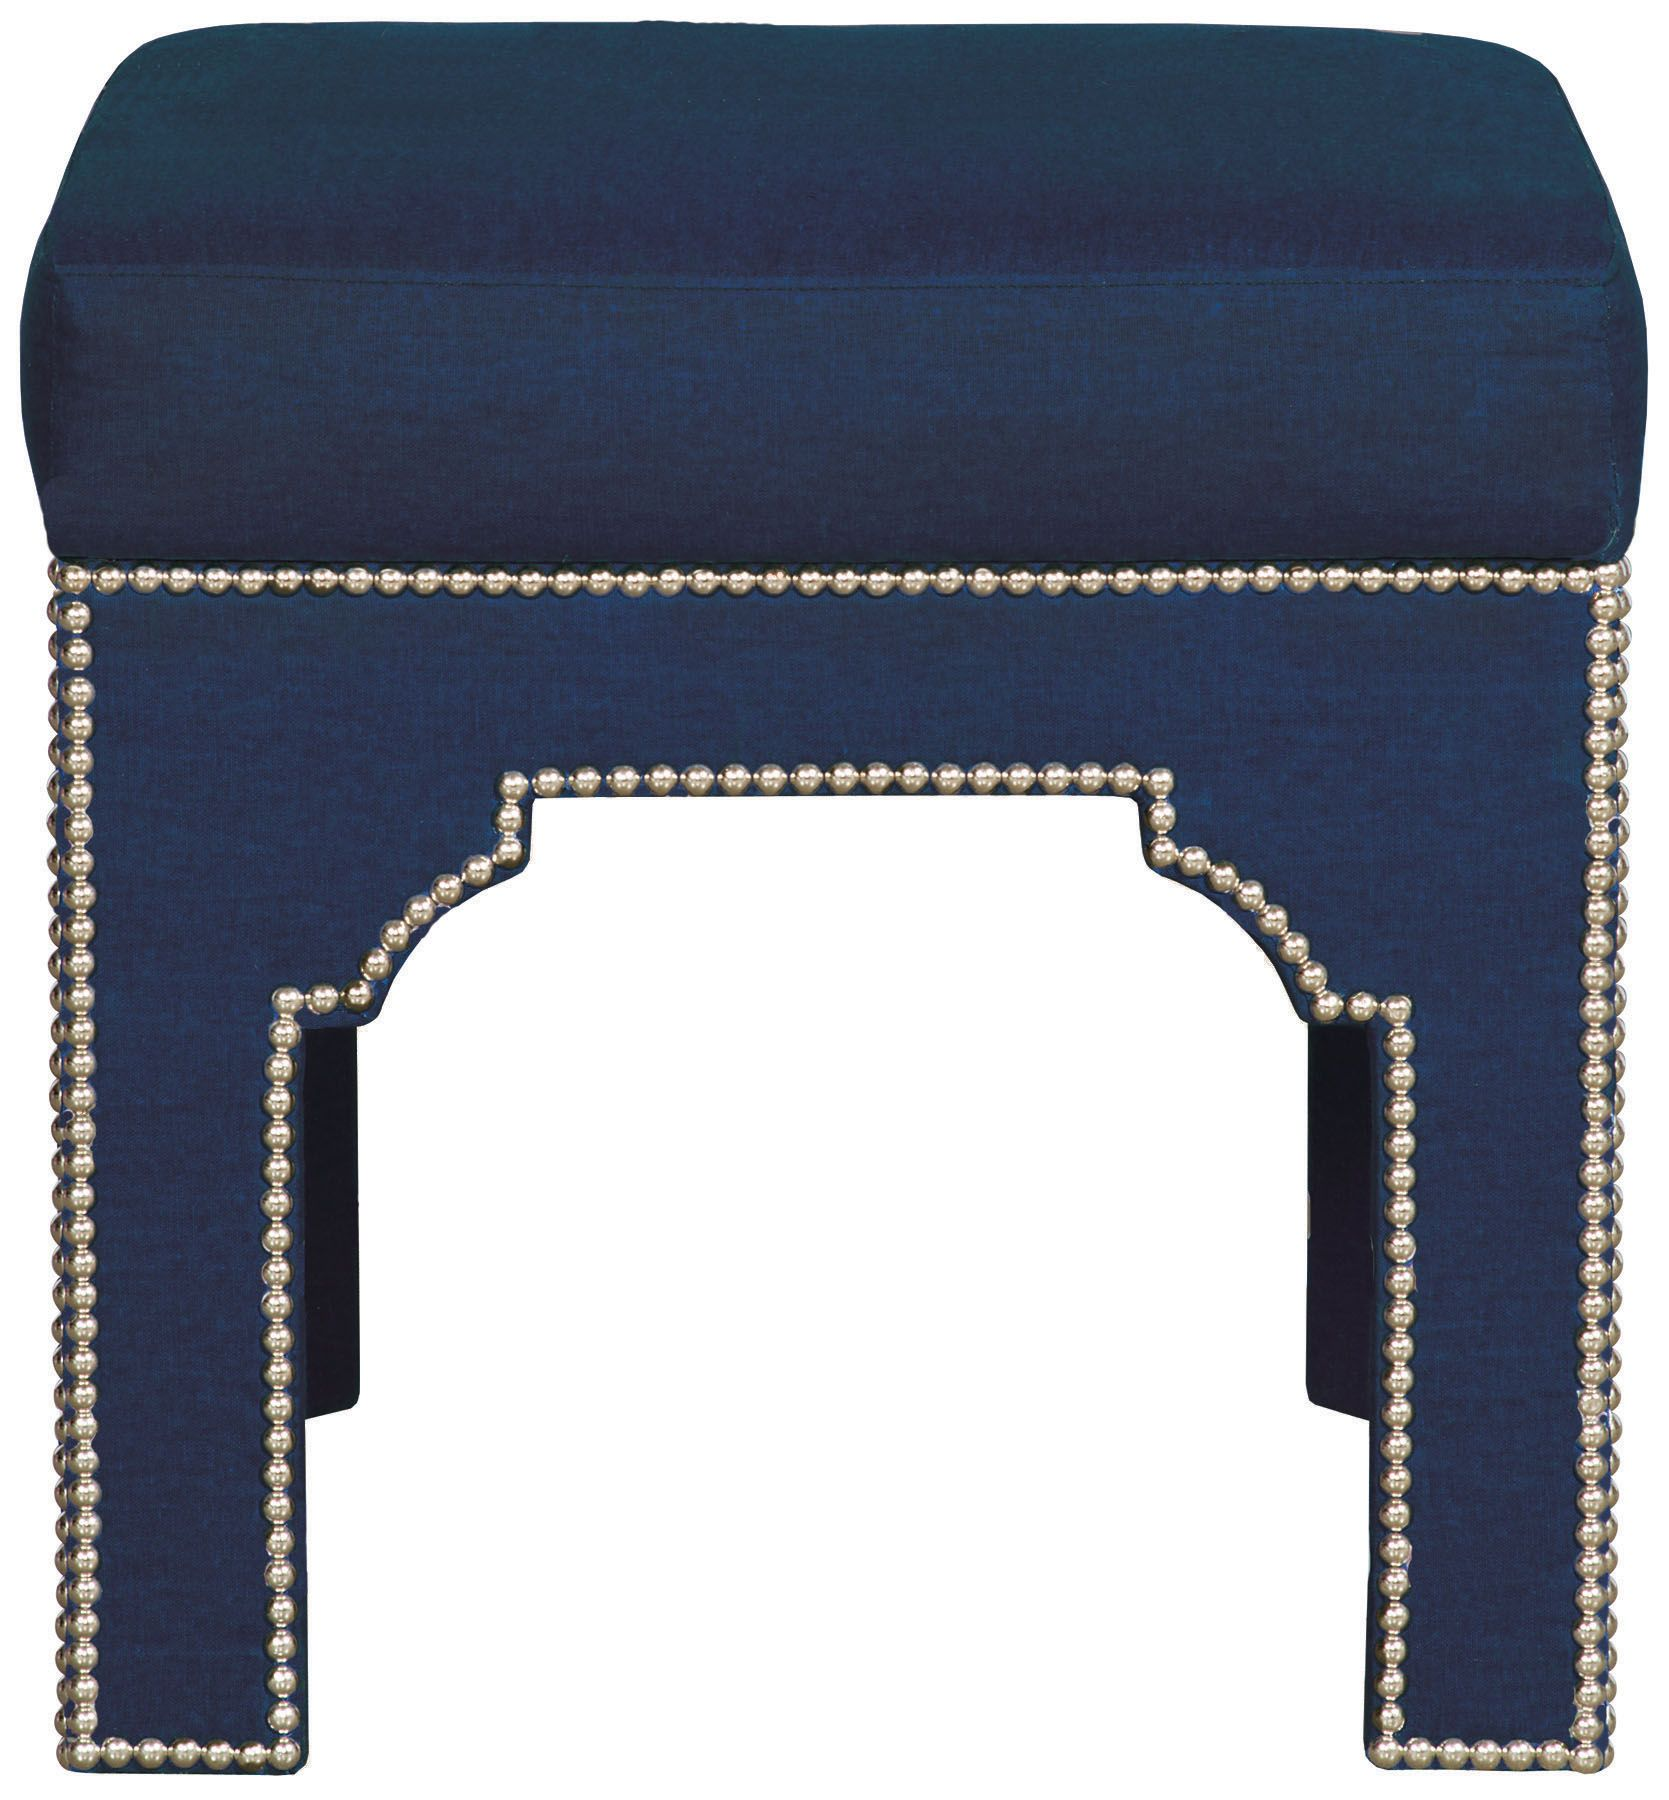 Pin by JADE New Orleans on Shop Jade Seating | Pinterest | Jade and ...